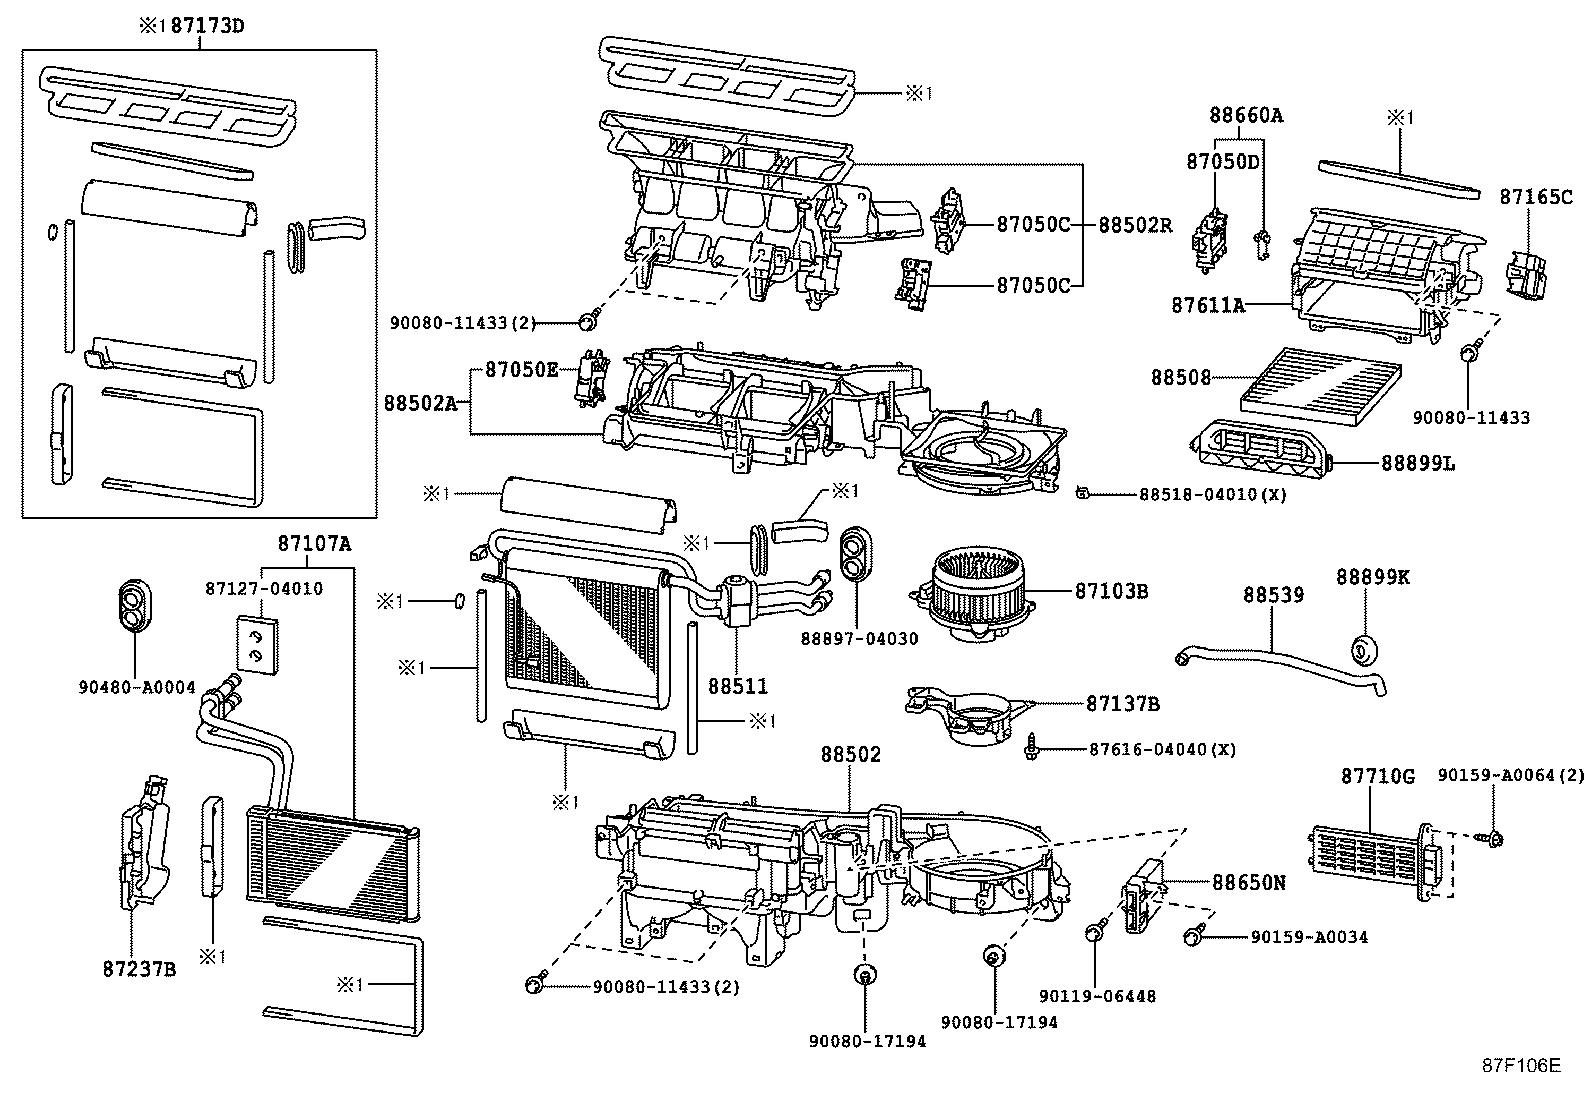 2005 toyota tacoma parts diagram wiring 5 pin relay 2009 damper heater air conditioning